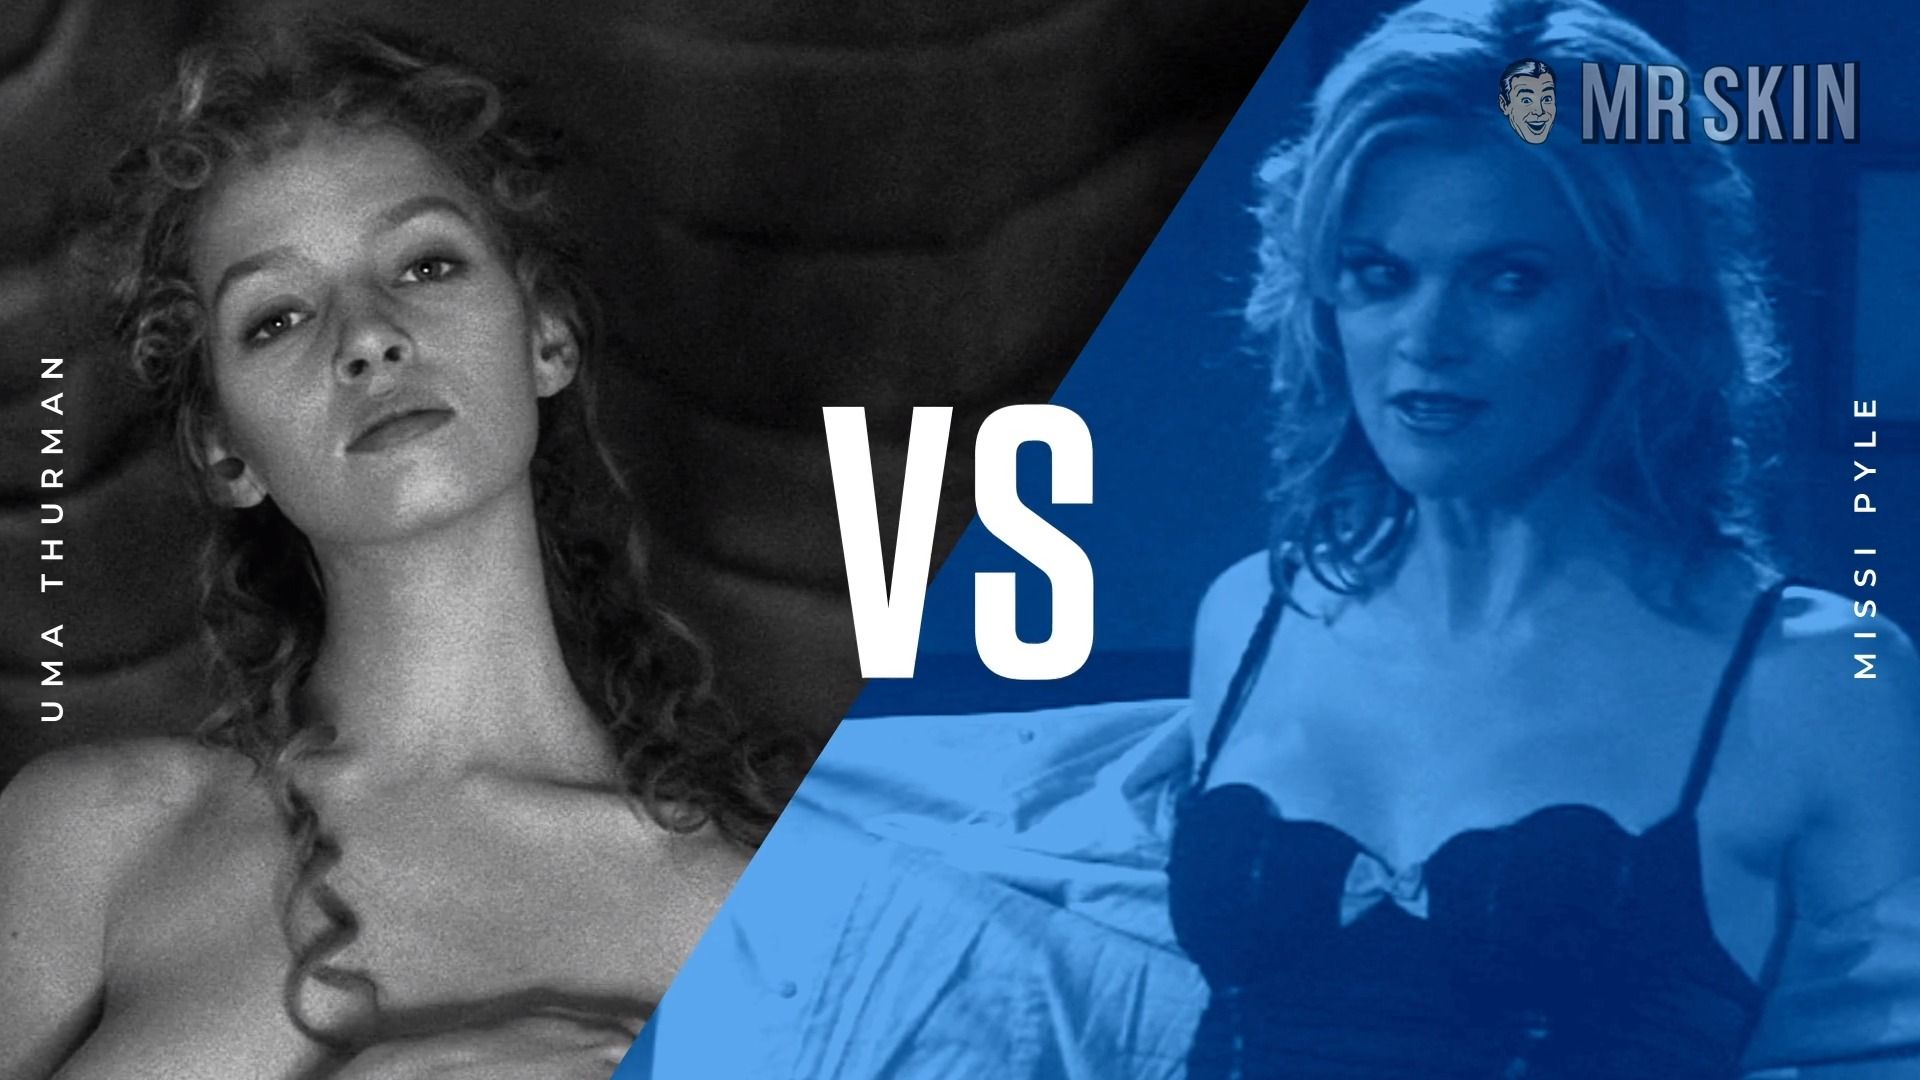 Battle of the Babes: Uma Thurman vs. Missi Pyle